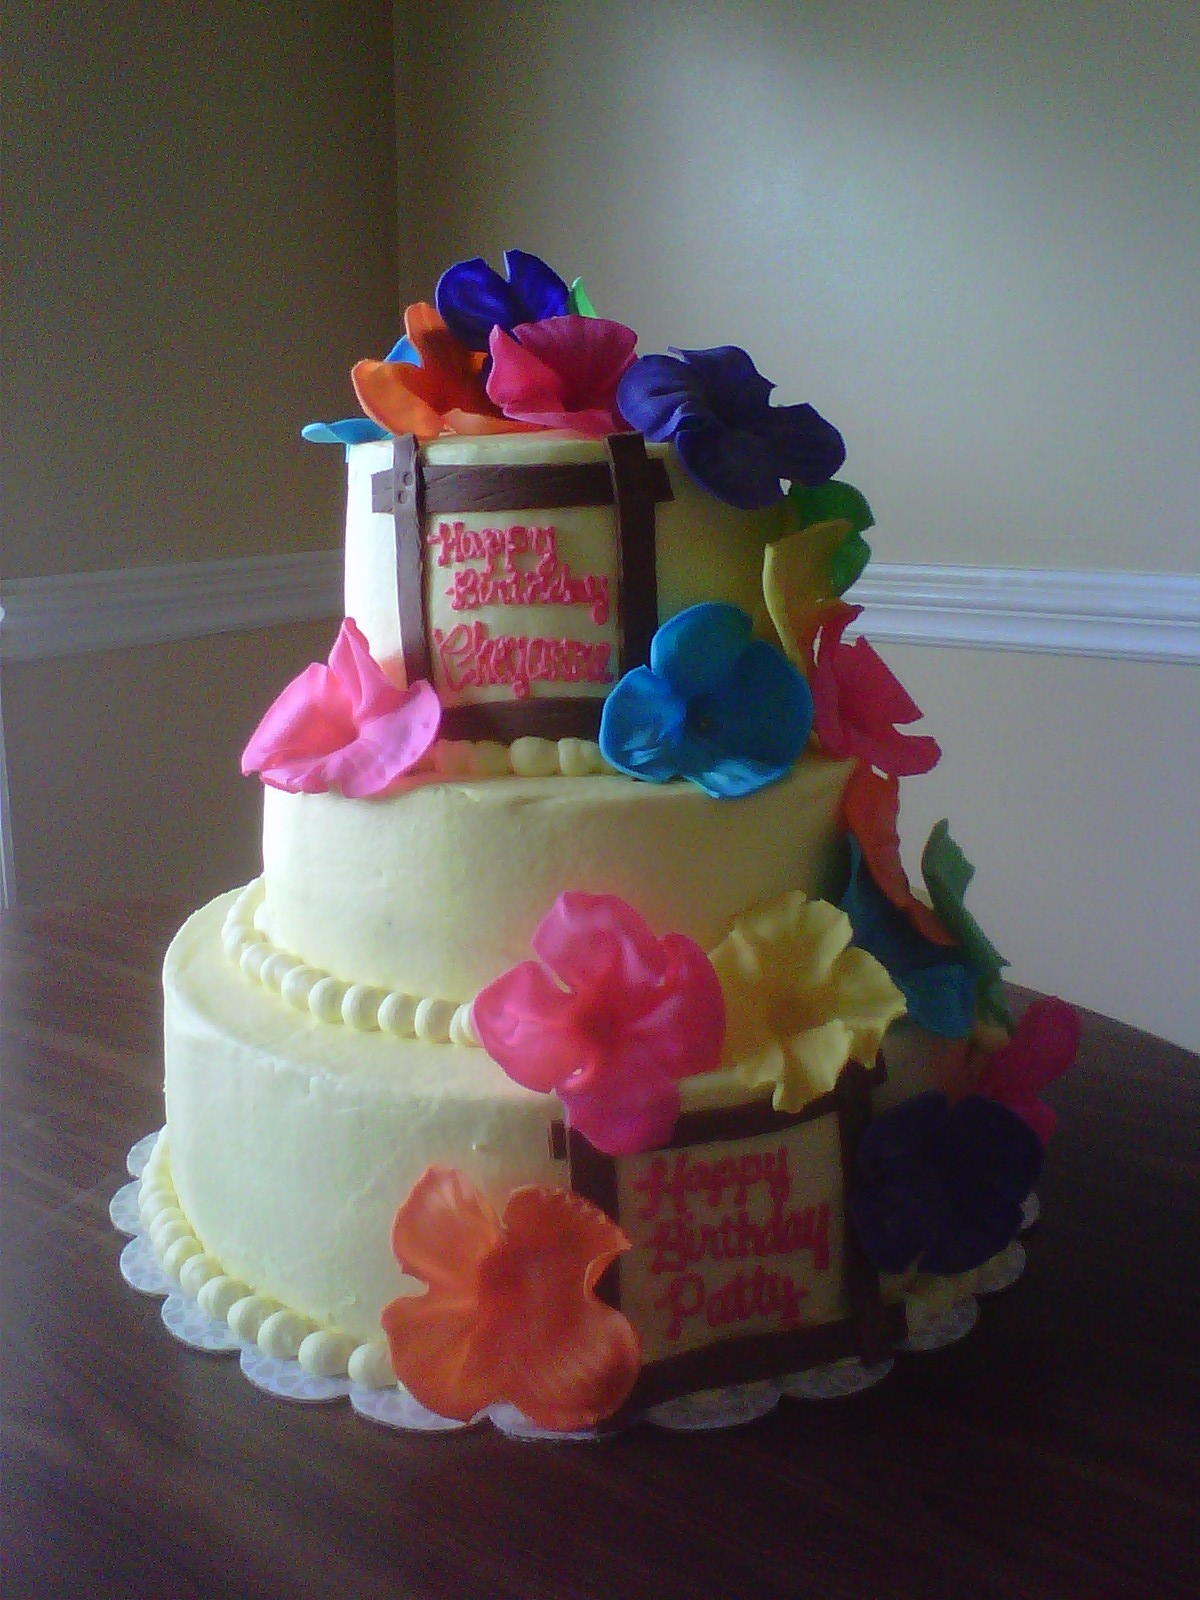 Luau Birthday Cakes 12 Tropical Birthday Cakes For Girls Photo Luau Birthday Cake